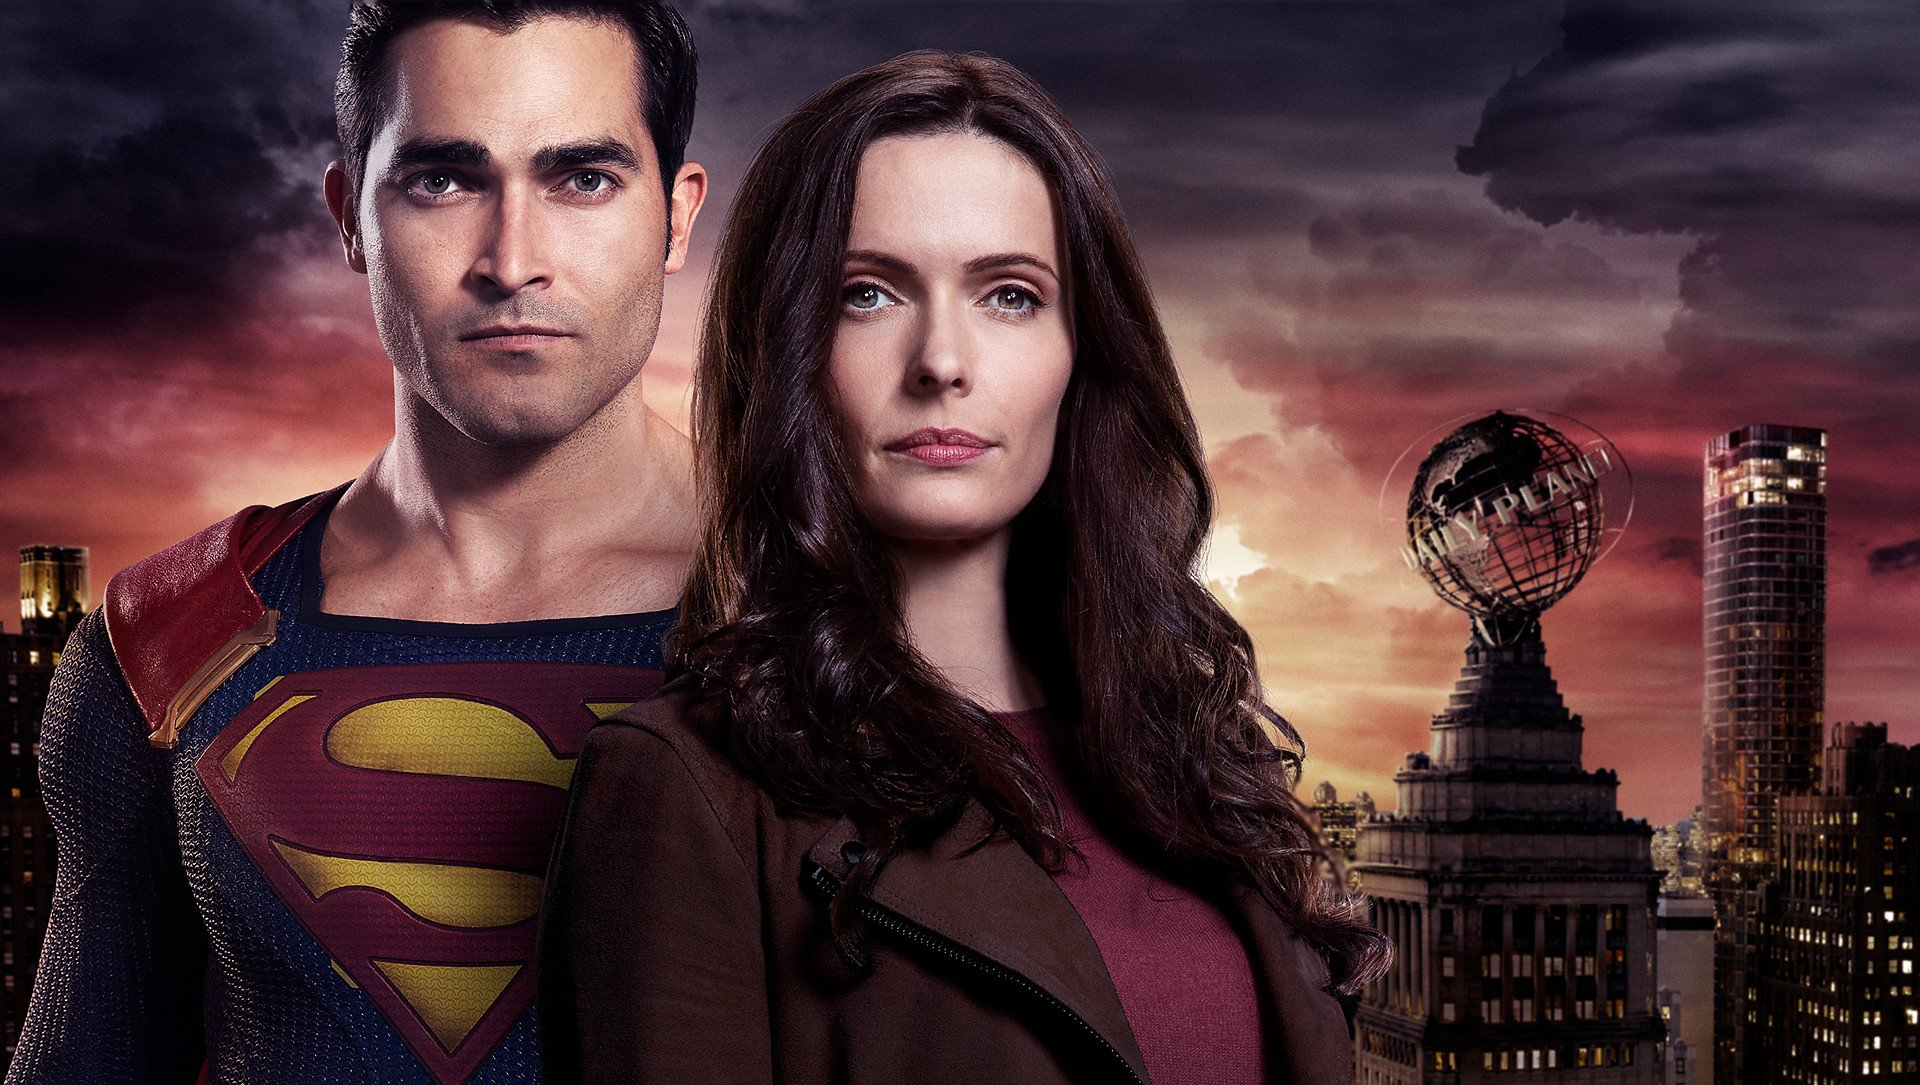 CW renews 'Superman & Lois' for second season after one episode